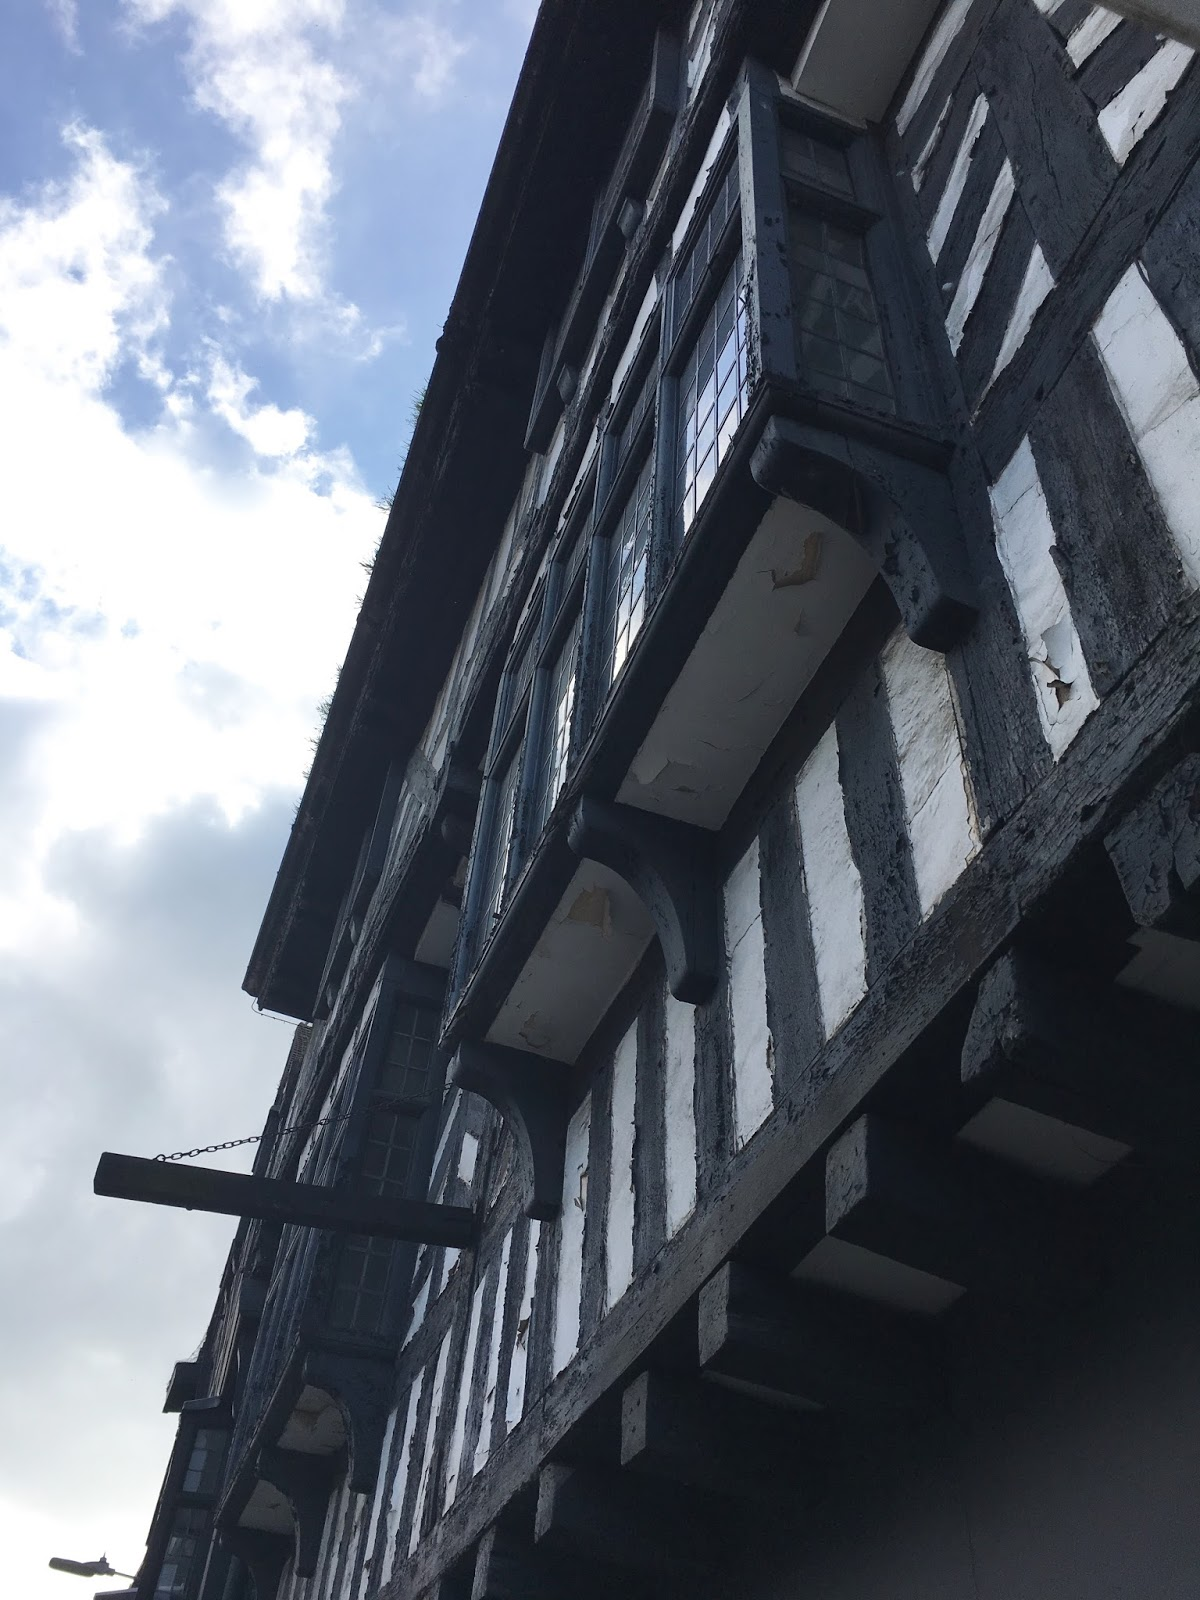 Stratford Upon Avon \ Architecture  \ William Travel \ Priceless Life of Mine \ Over 40 lifestyle blog